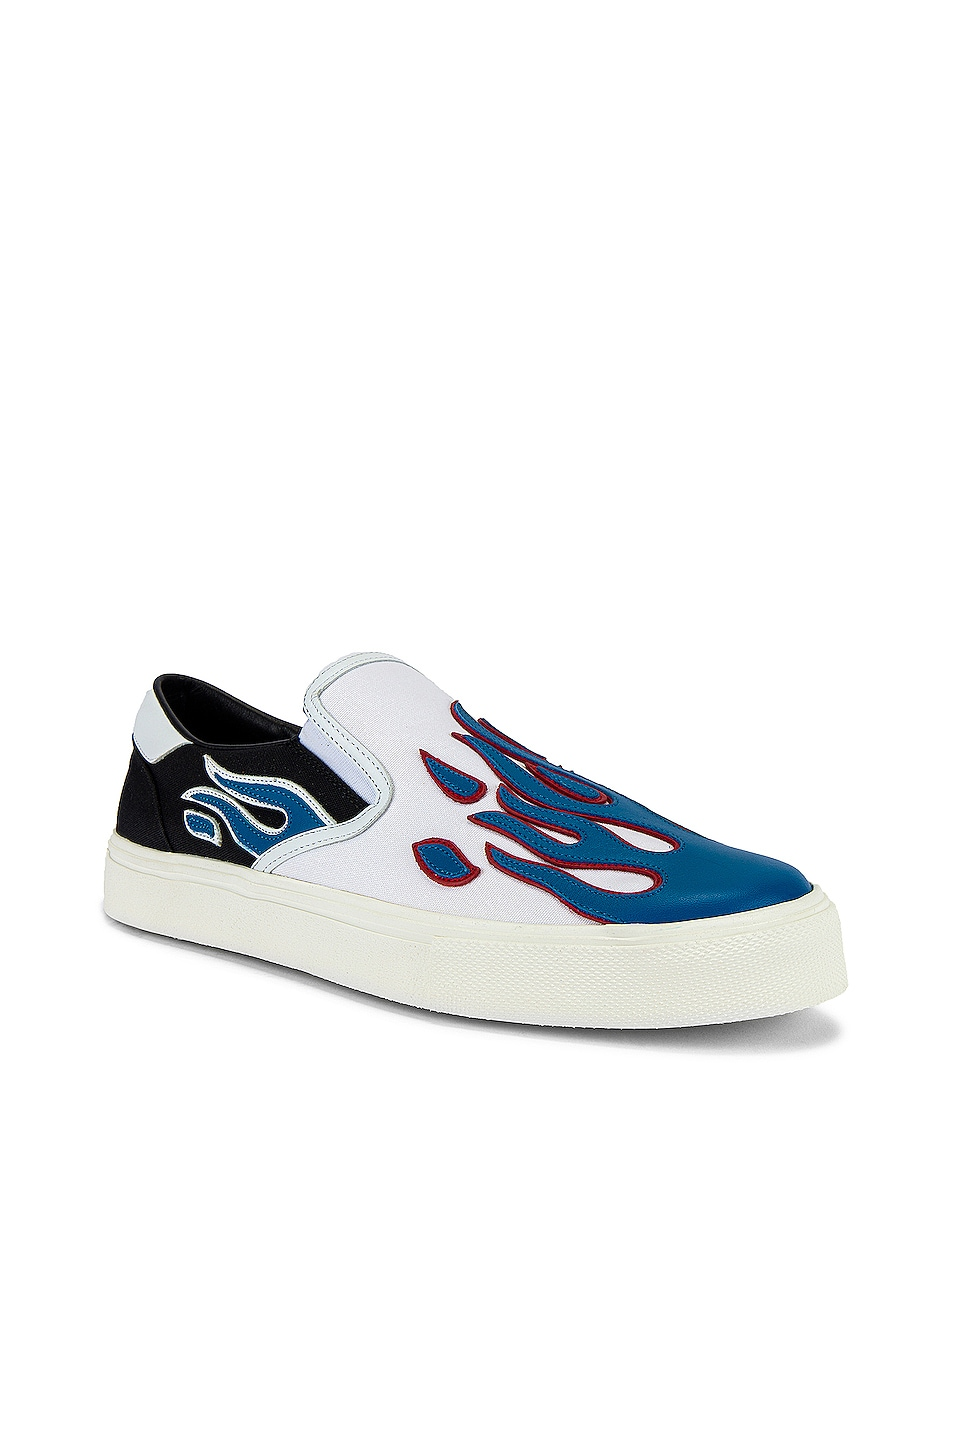 Image 1 of Amiri Flame Slip On in Black & White & Blue